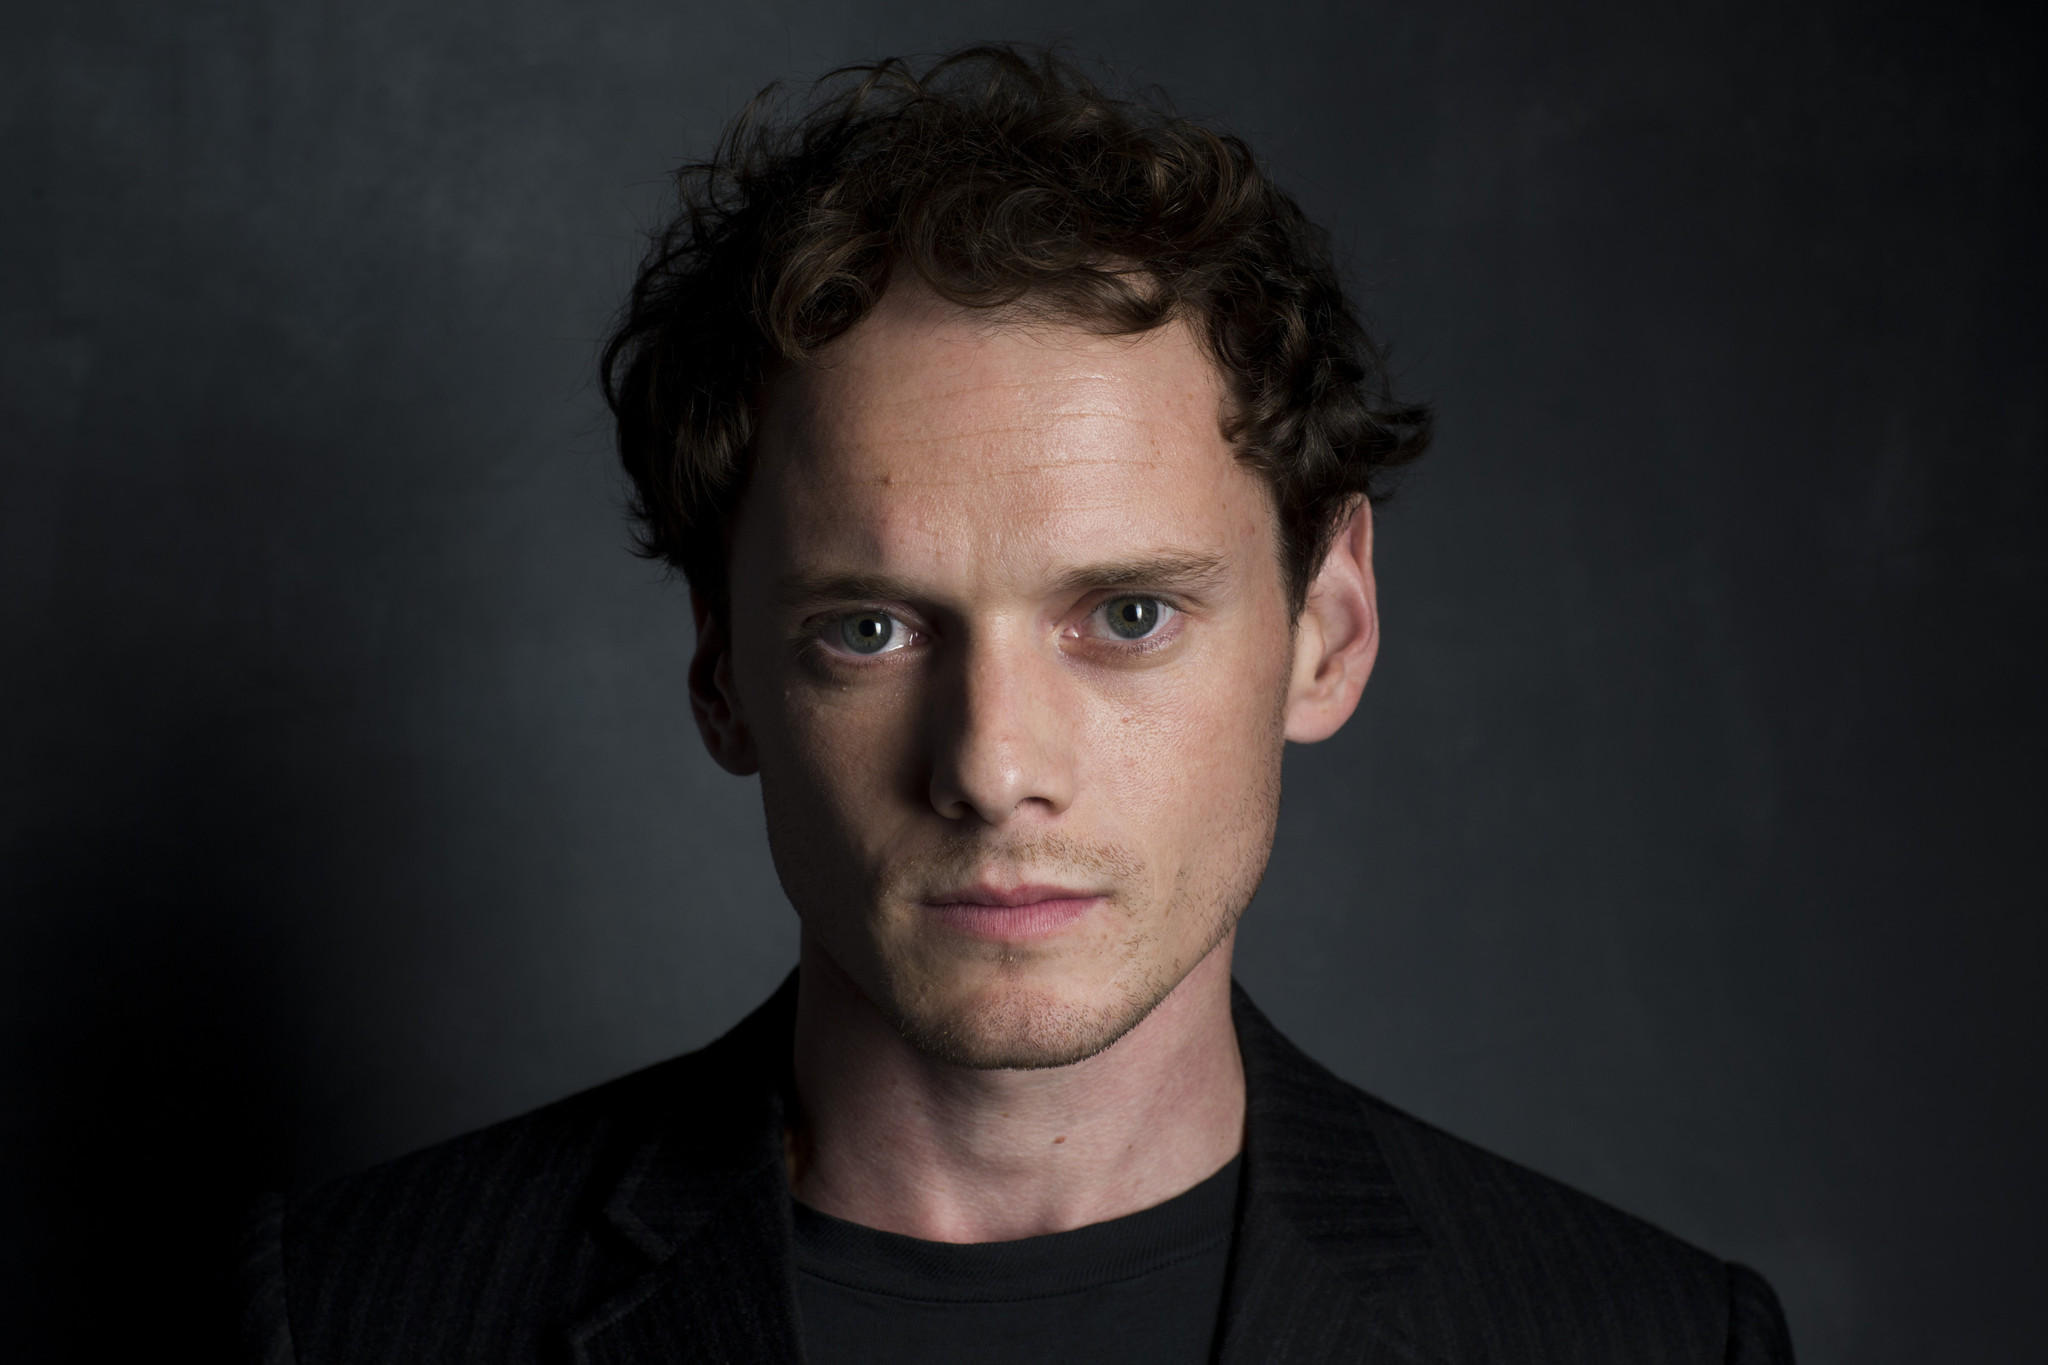 anton yelchin heightanton yelchin black and white, anton yelchin death, anton yelchin funeral, anton yelchin died, anton yelchin gif, anton yelchin смерть, anton yelchin speaking russian, anton yelchin parents, anton yelchin wiki, anton yelchin charlie bartlett, anton yelchin vk, anton yelchin trollhunters, anton yelchin twitter, anton yelchin height, anton yelchin gif hunt, anton yelchin and felicity jones, anton yelchin movies, anton yelchin умер, anton yelchin imdb, anton yelchin jeep